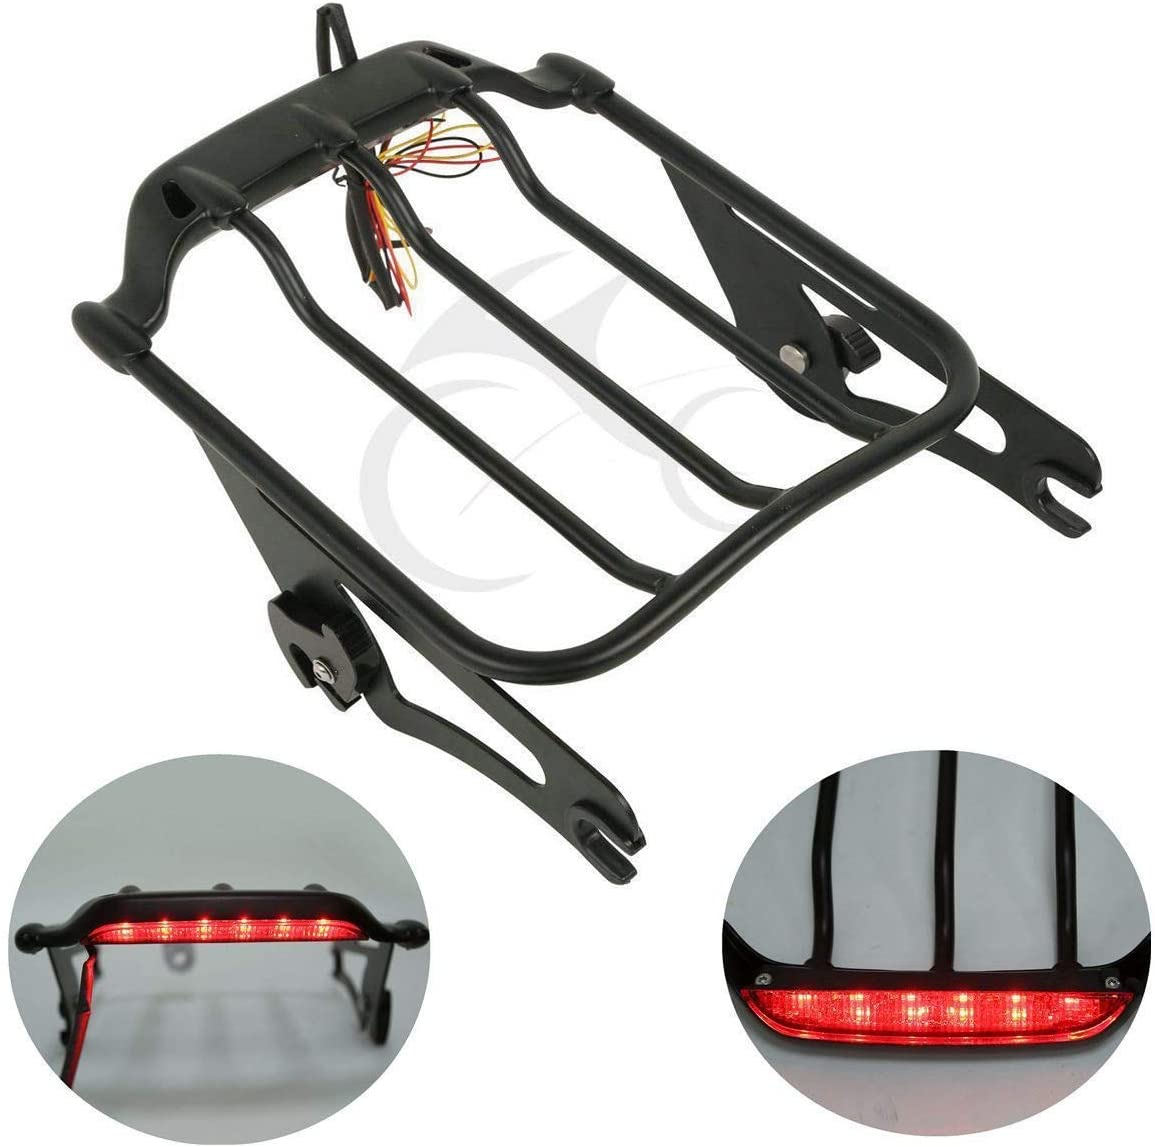 XFMT Black Detachable store Two-Up Luggage Rack Light LED New mail order Harle W for